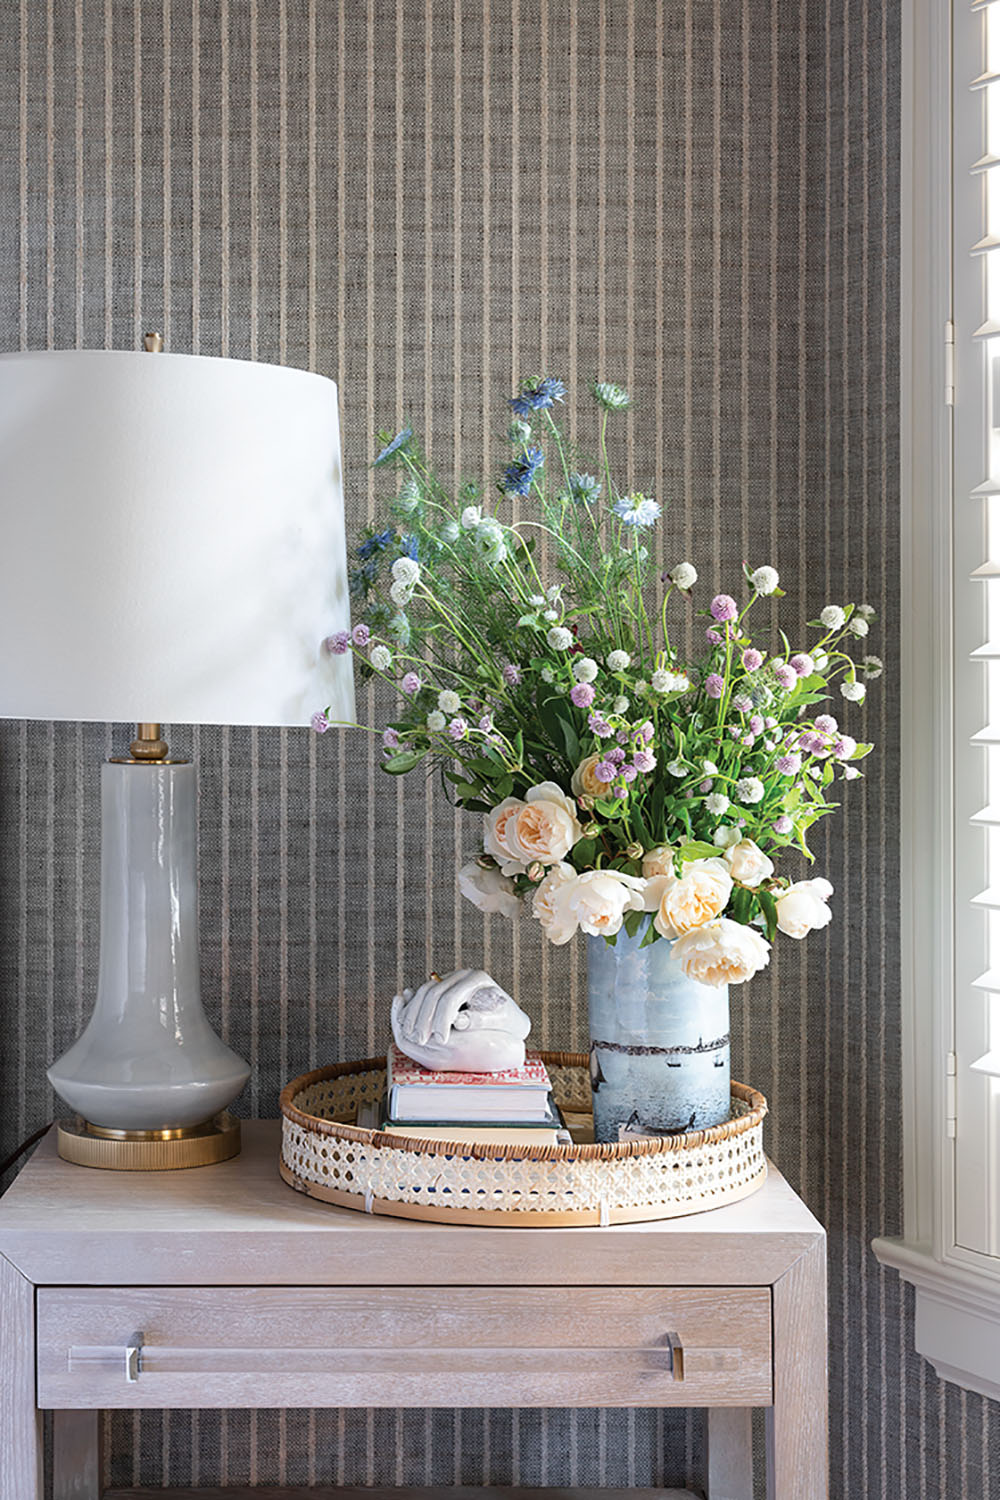 pickled wood bedside with a lamp, tray, and floral arrangement